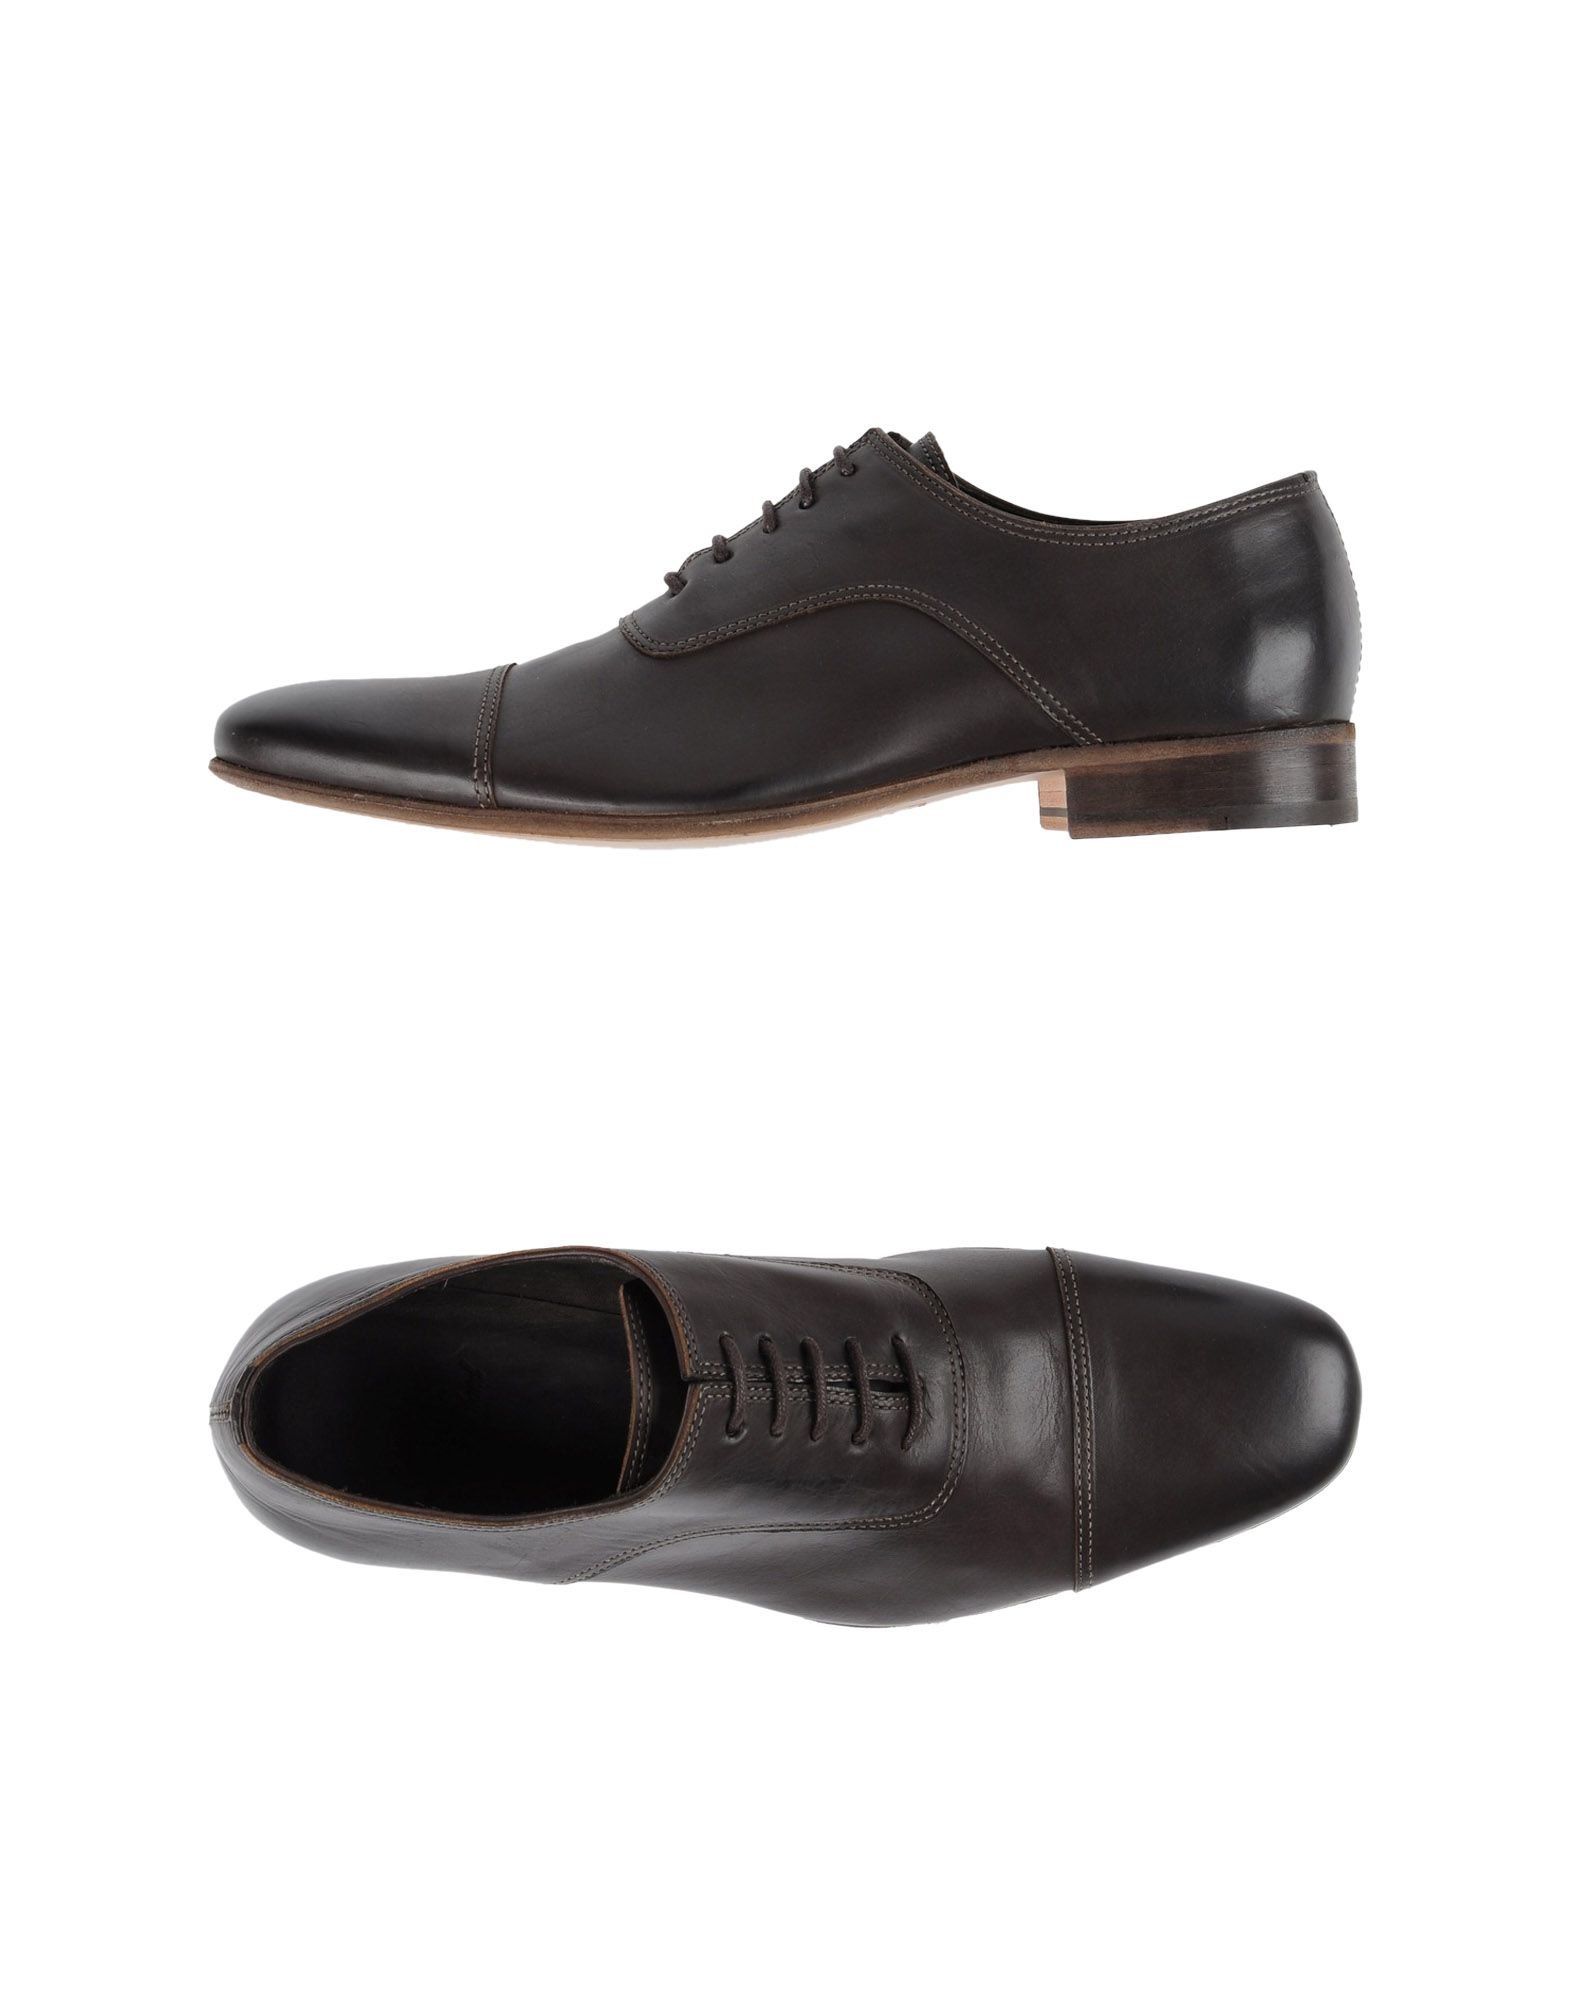 NDC Lace-up Shoes in Dark Brown (Brown) for Men